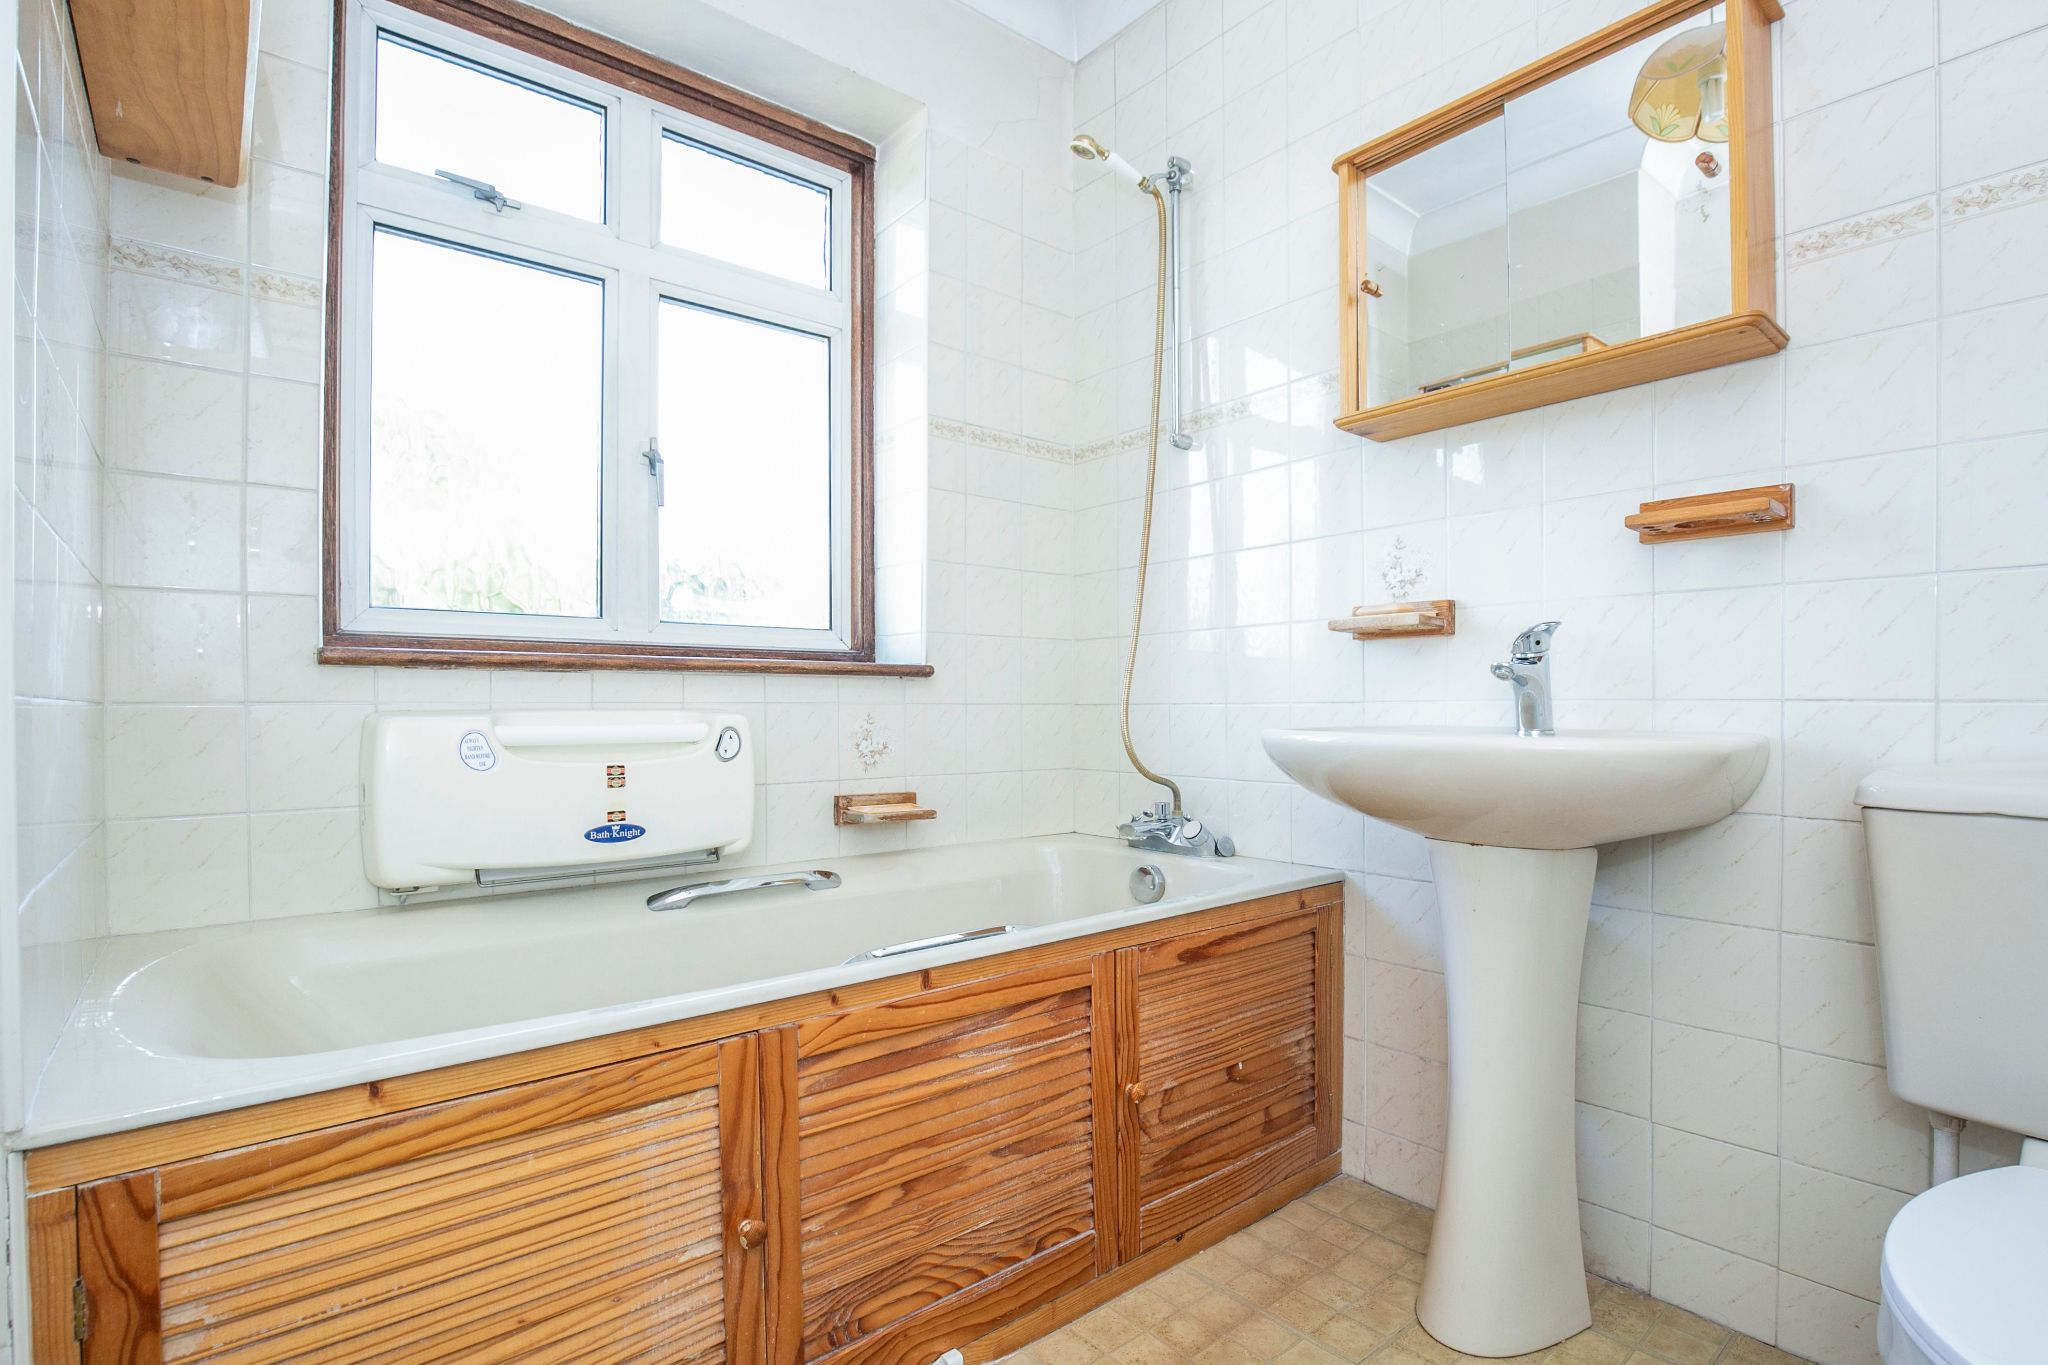 3 bedroom semi-detached house Sold in Potters Bar - Photograph 10